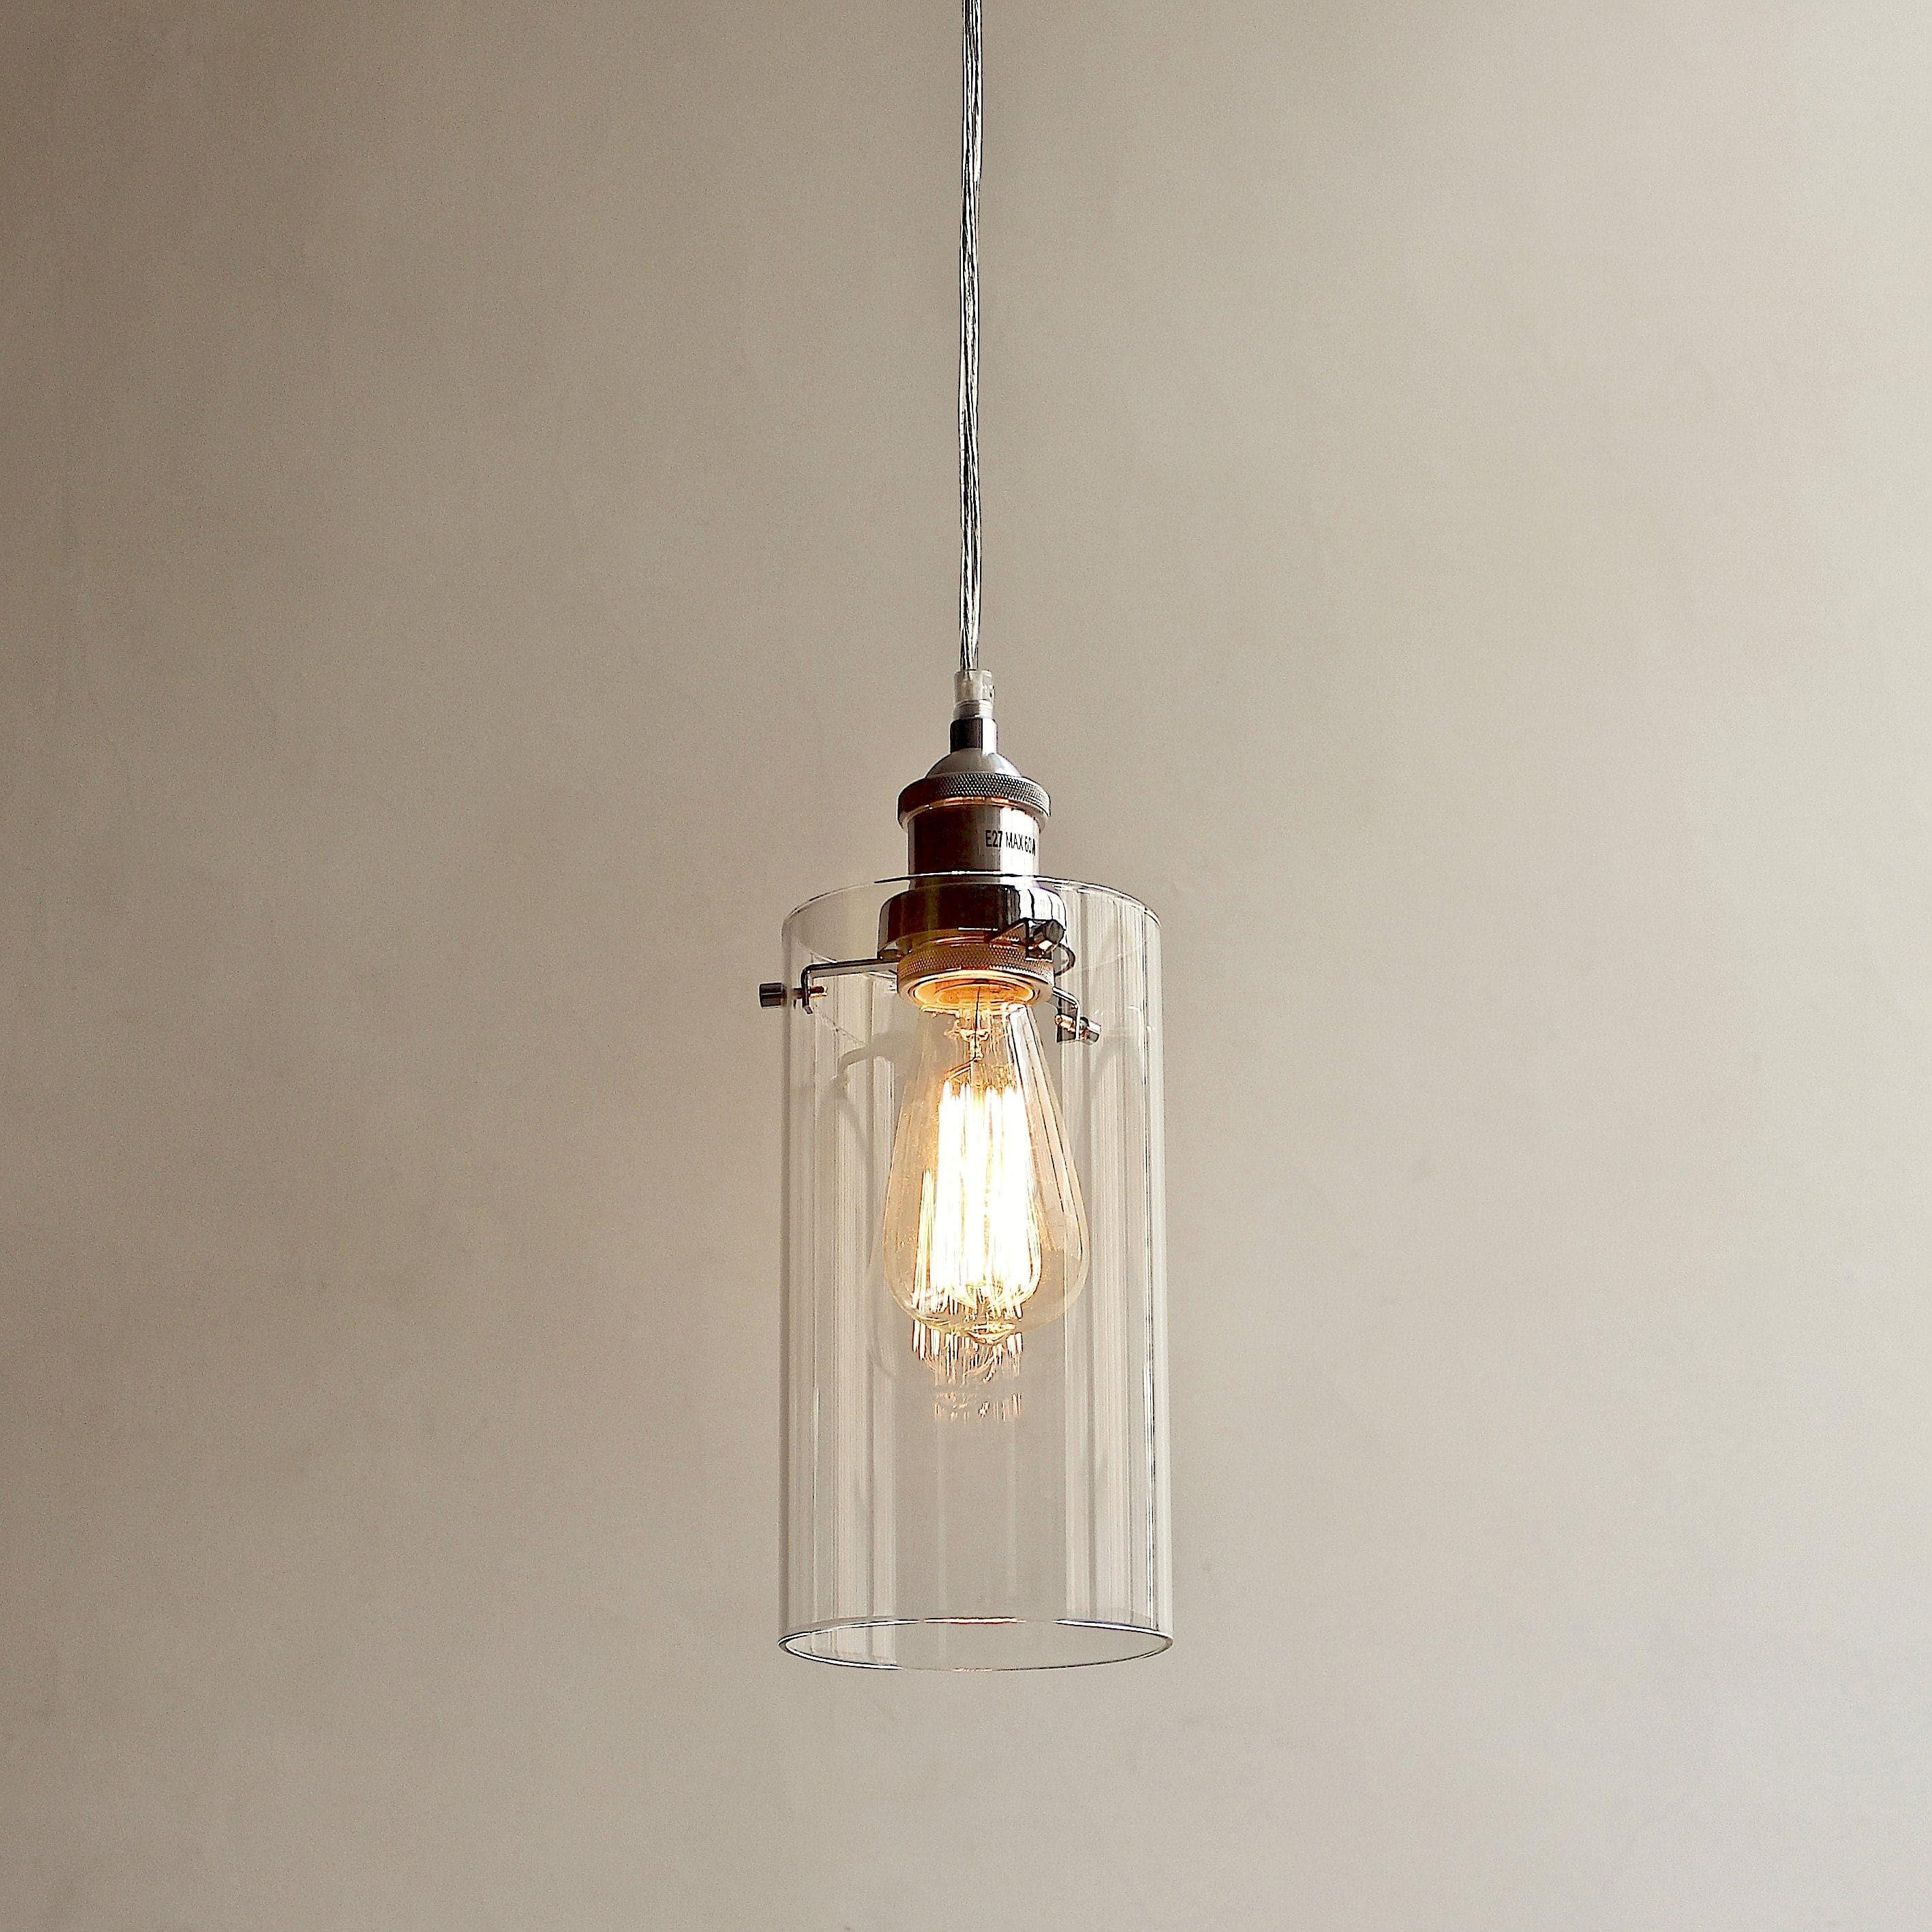 solid pendant lights cylinder products lampefeber light